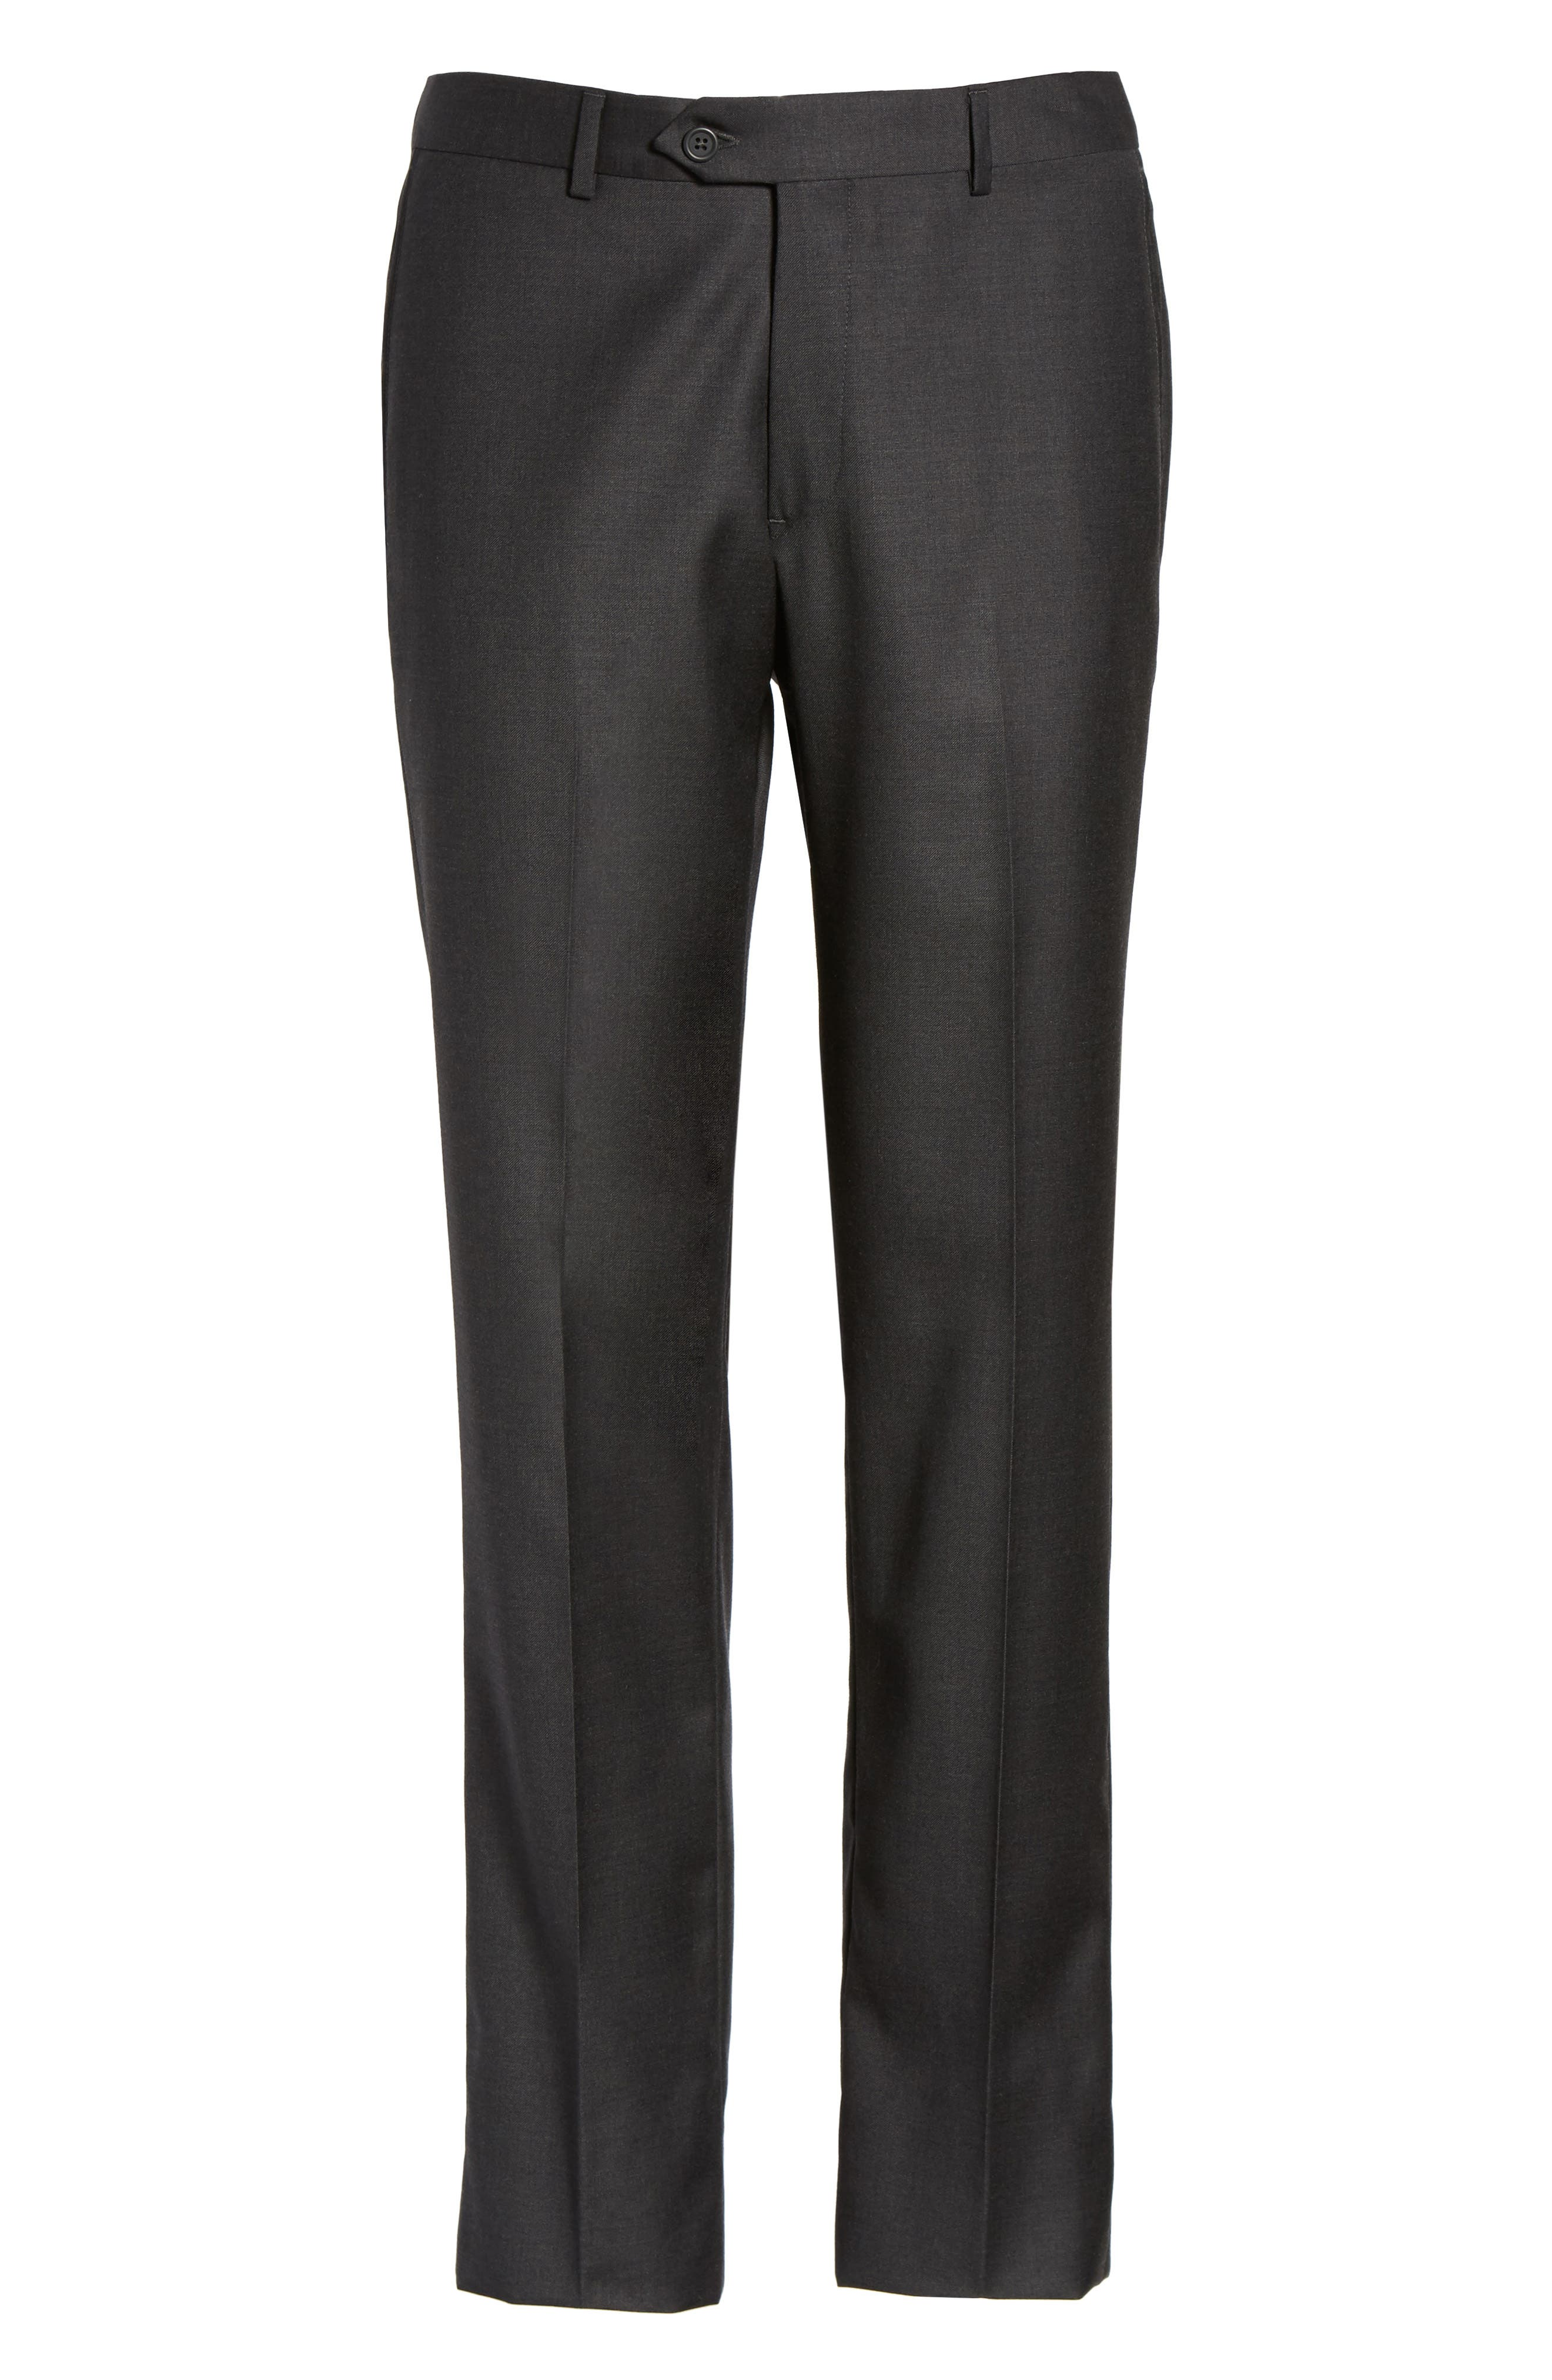 Flat Front Solid Wool Trousers,                             Alternate thumbnail 32, color,